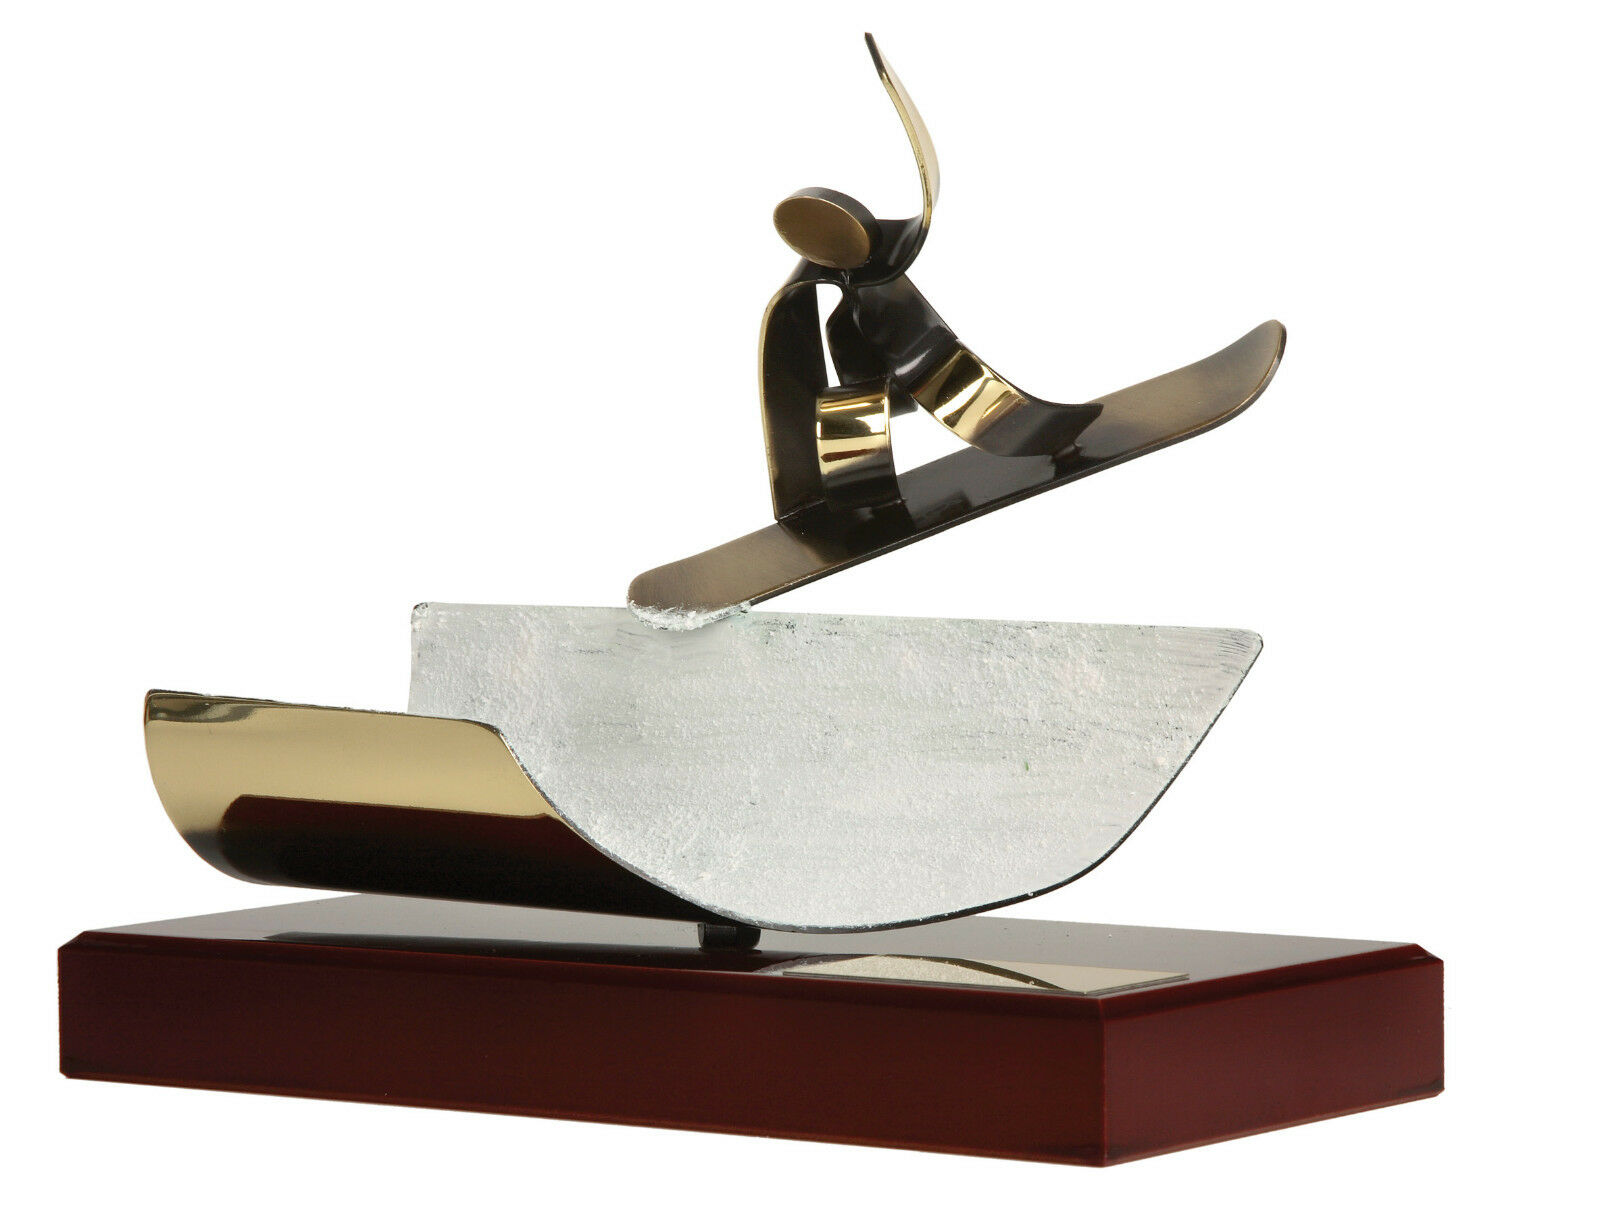 HANDMADE ALL METAL SNOWBOARD TROPHY GIFT TOP QUALITY FREE POSTAGE FREE ENGRAVING